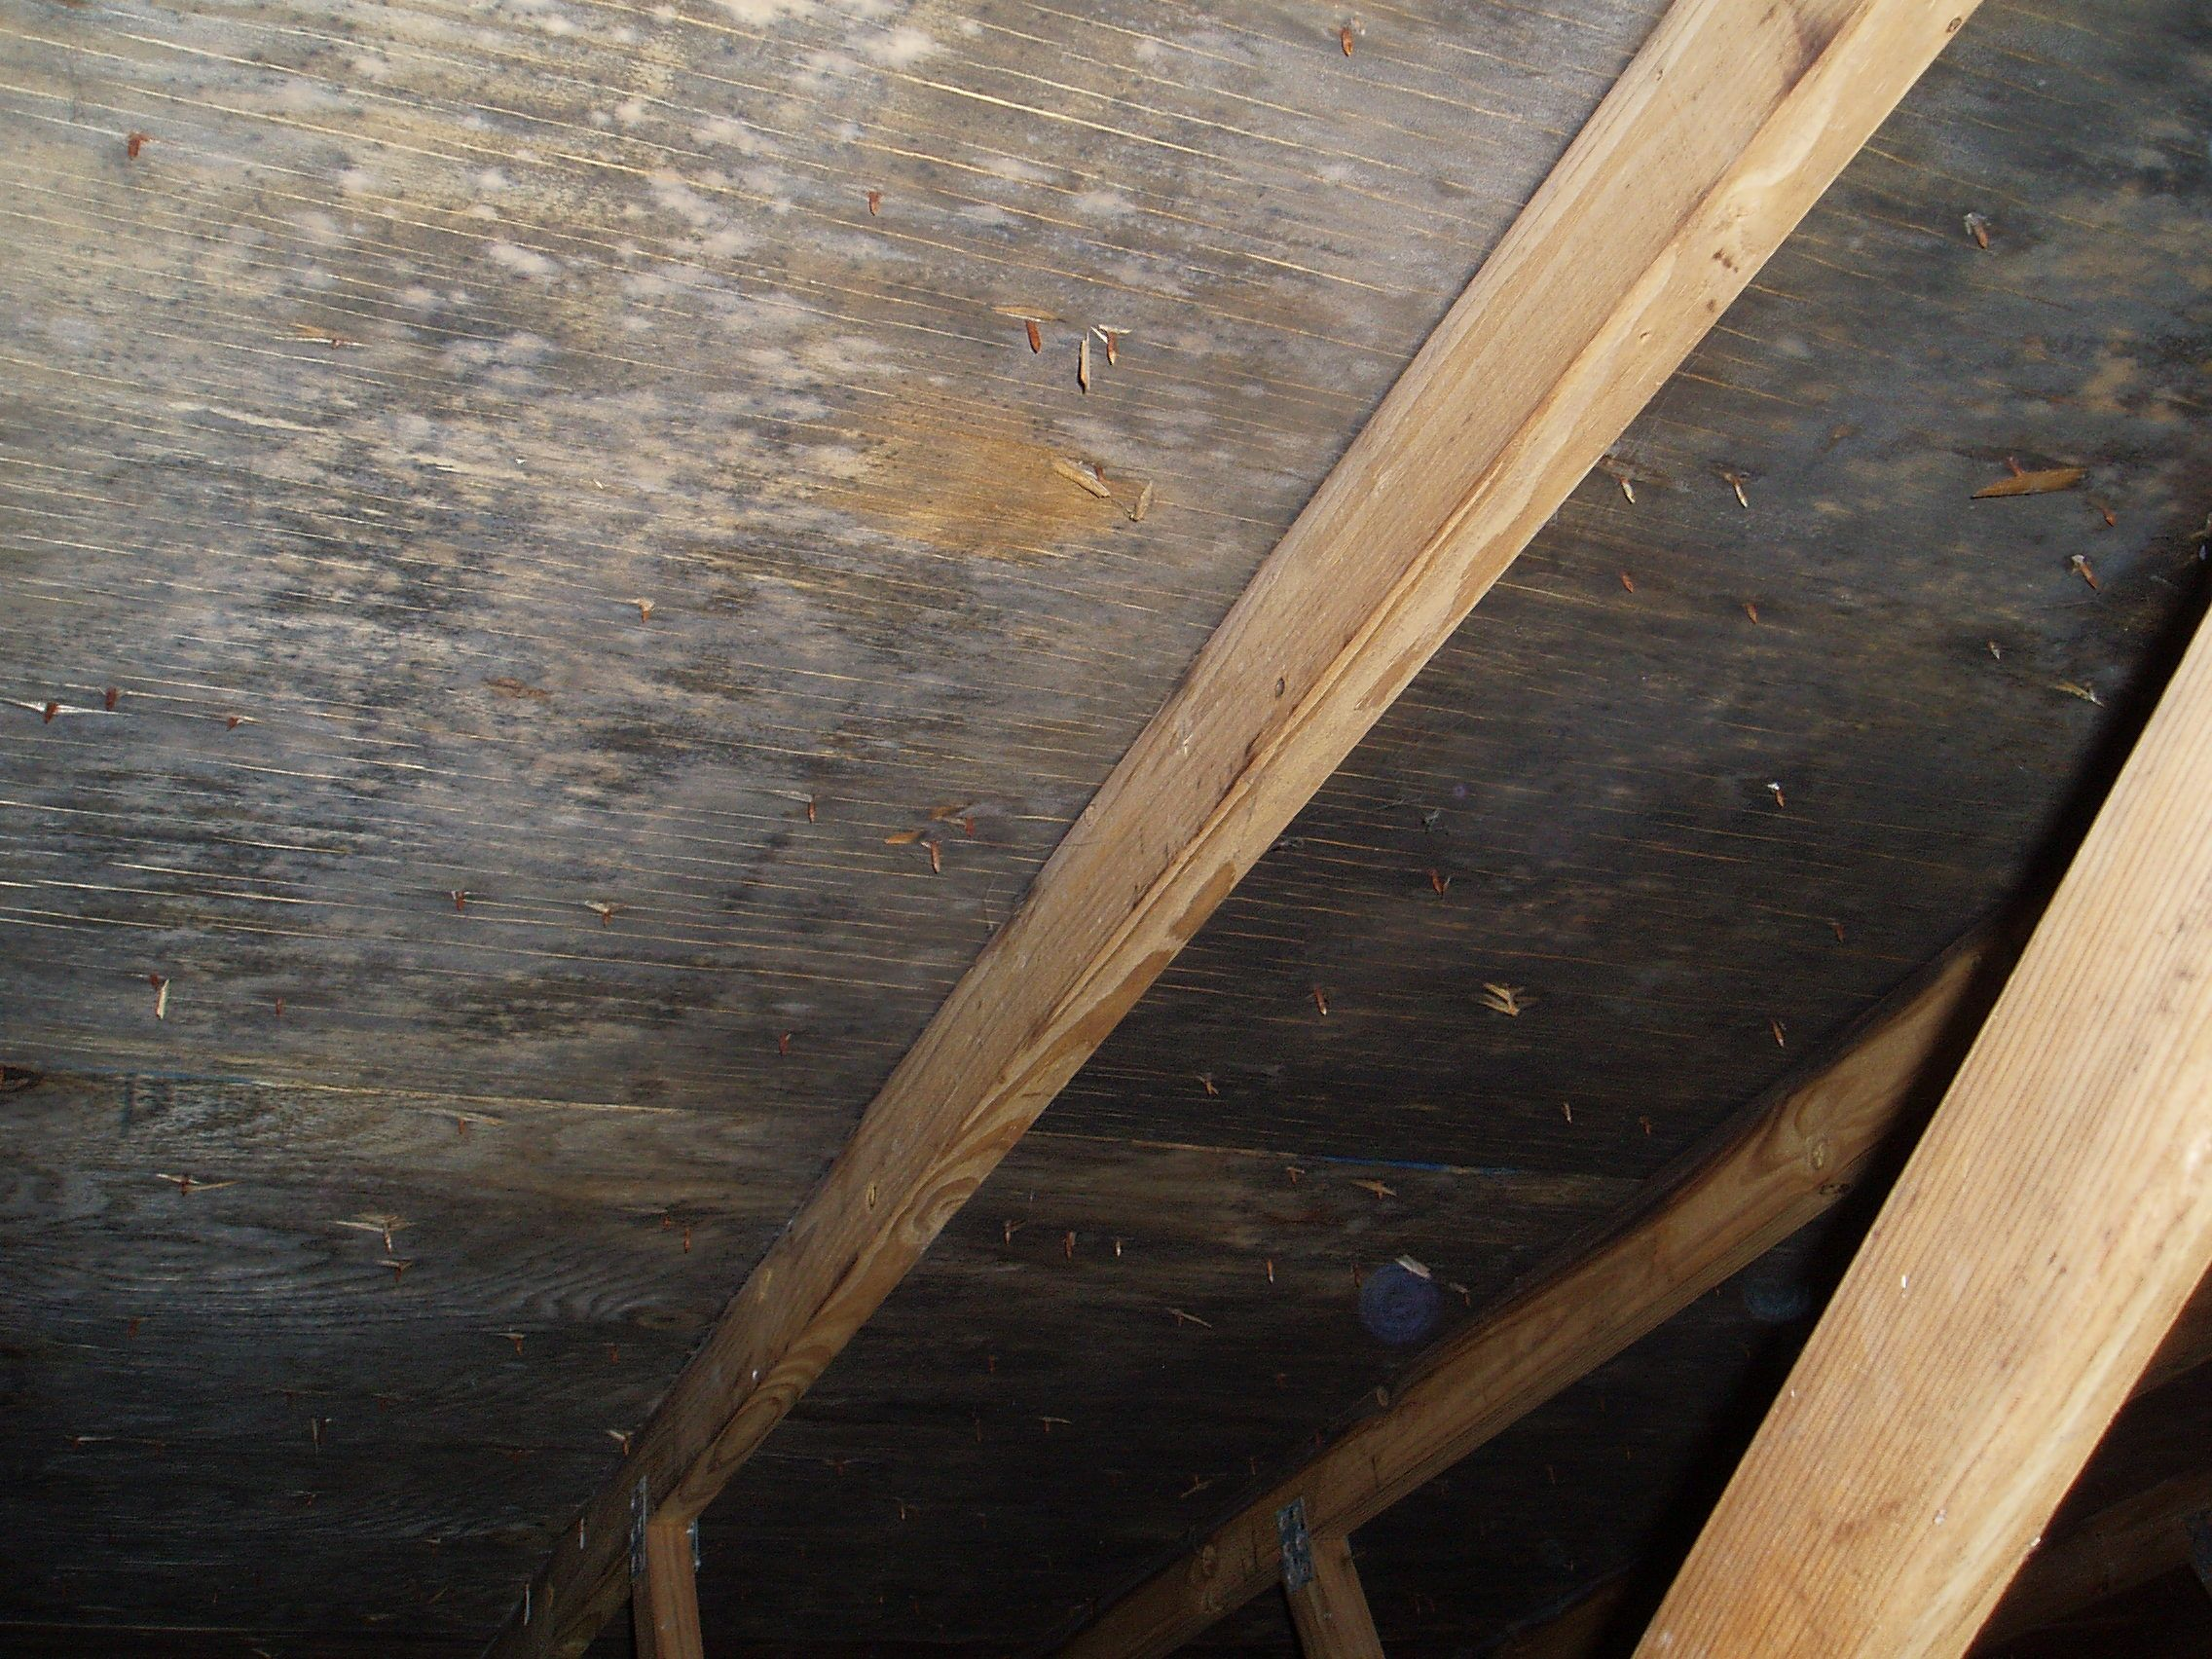 Mold In Attic Caused By Excess Moisture And Poor Ventalation Entryway Tables Molding Decor